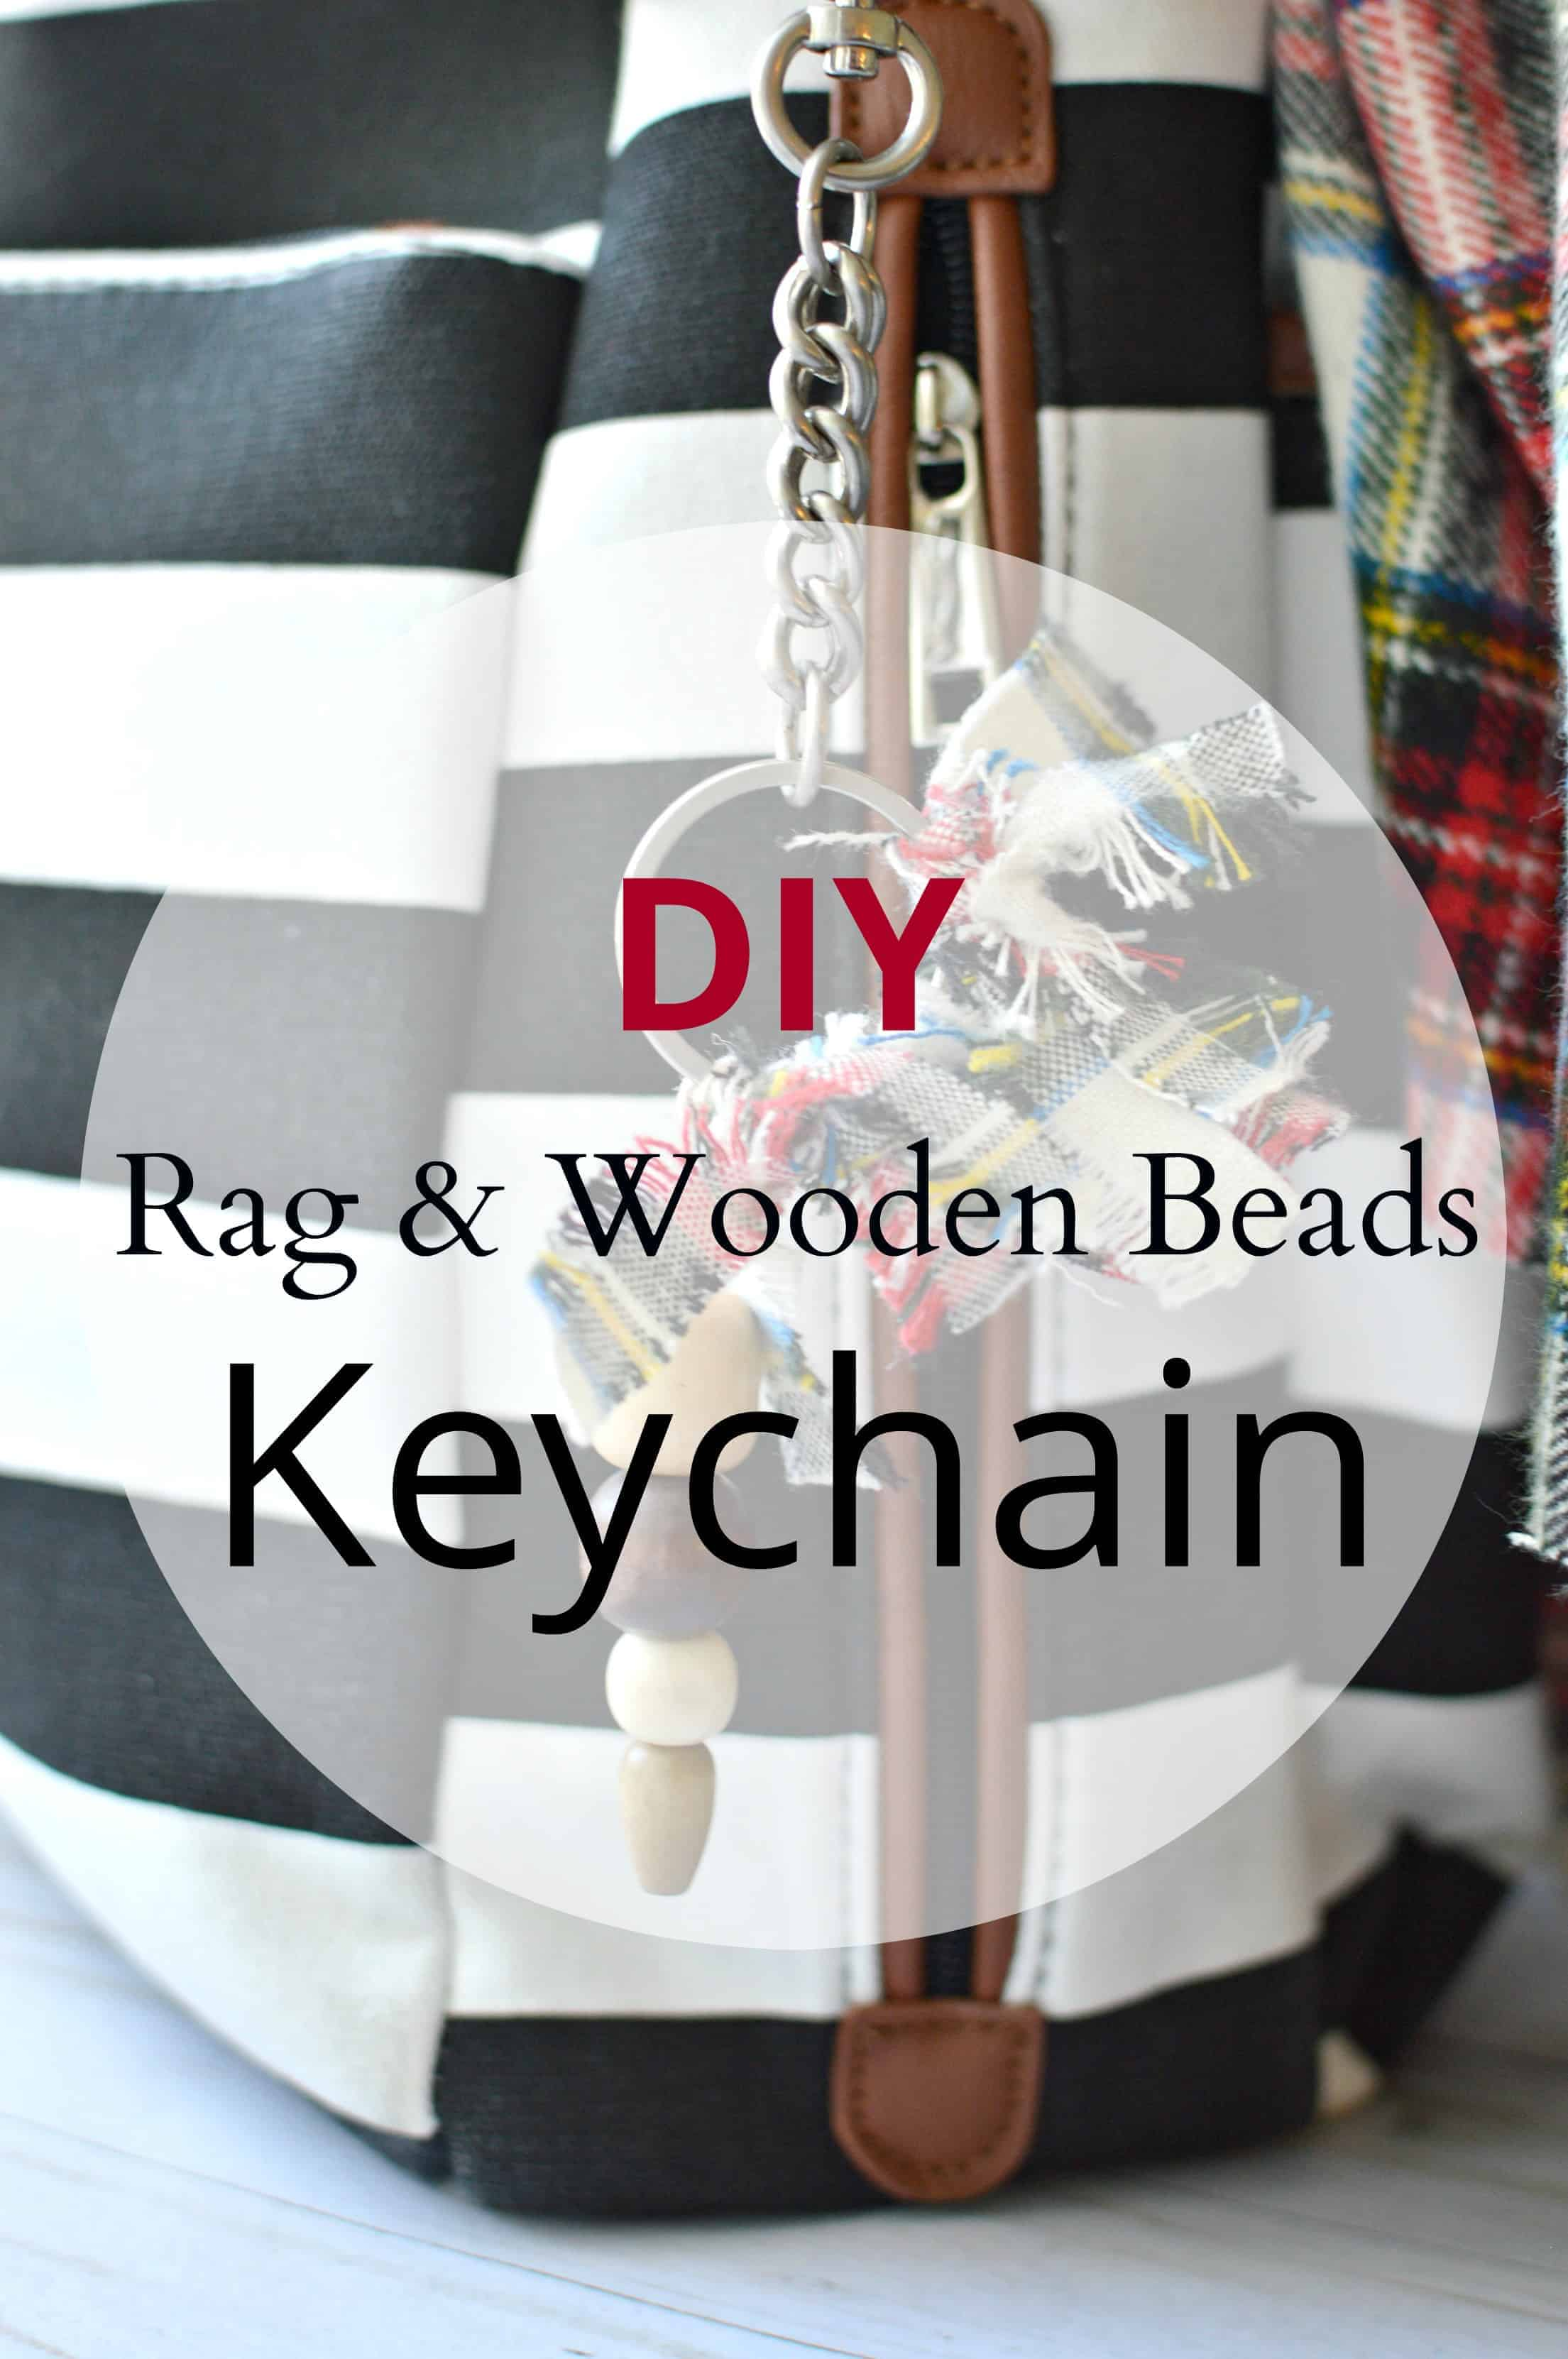 DIY Rag & Wooden Beads Keychain